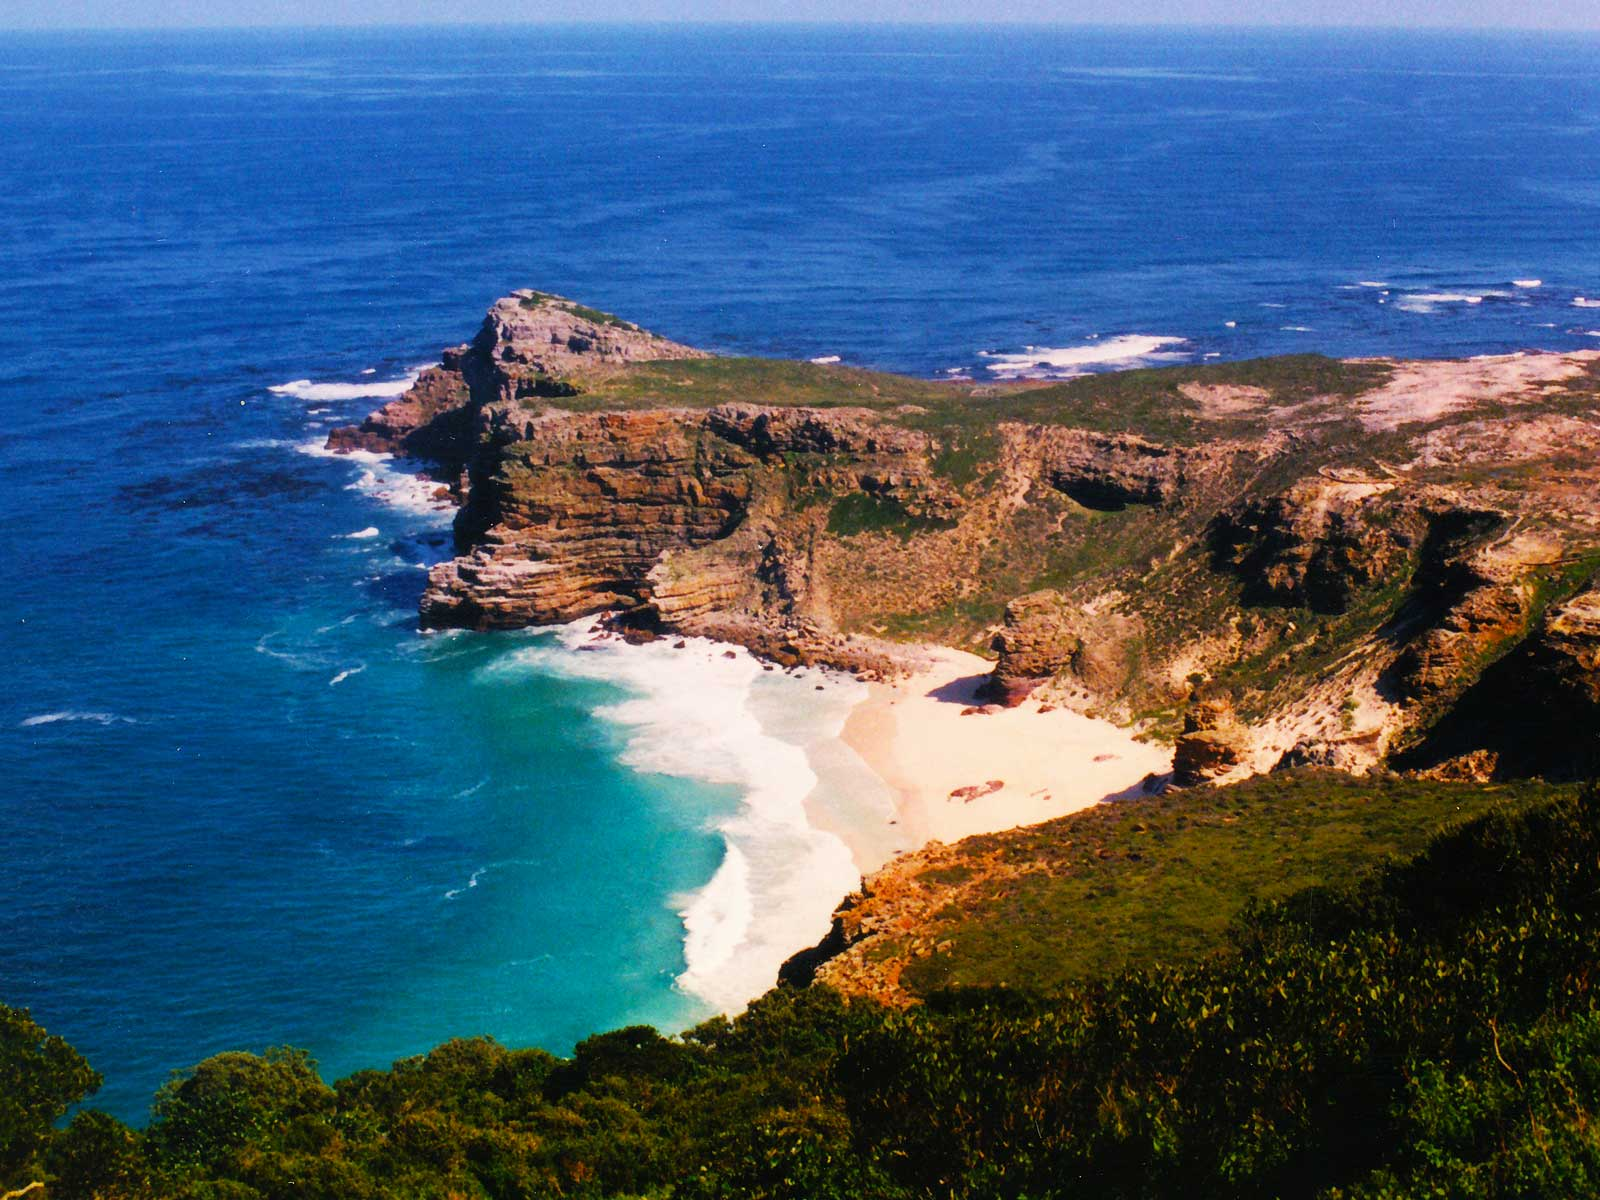 Cape of Good Hope | Steven Andrew Martin | South Africa Photo Journal | School for International Training | SIT Study Abroad